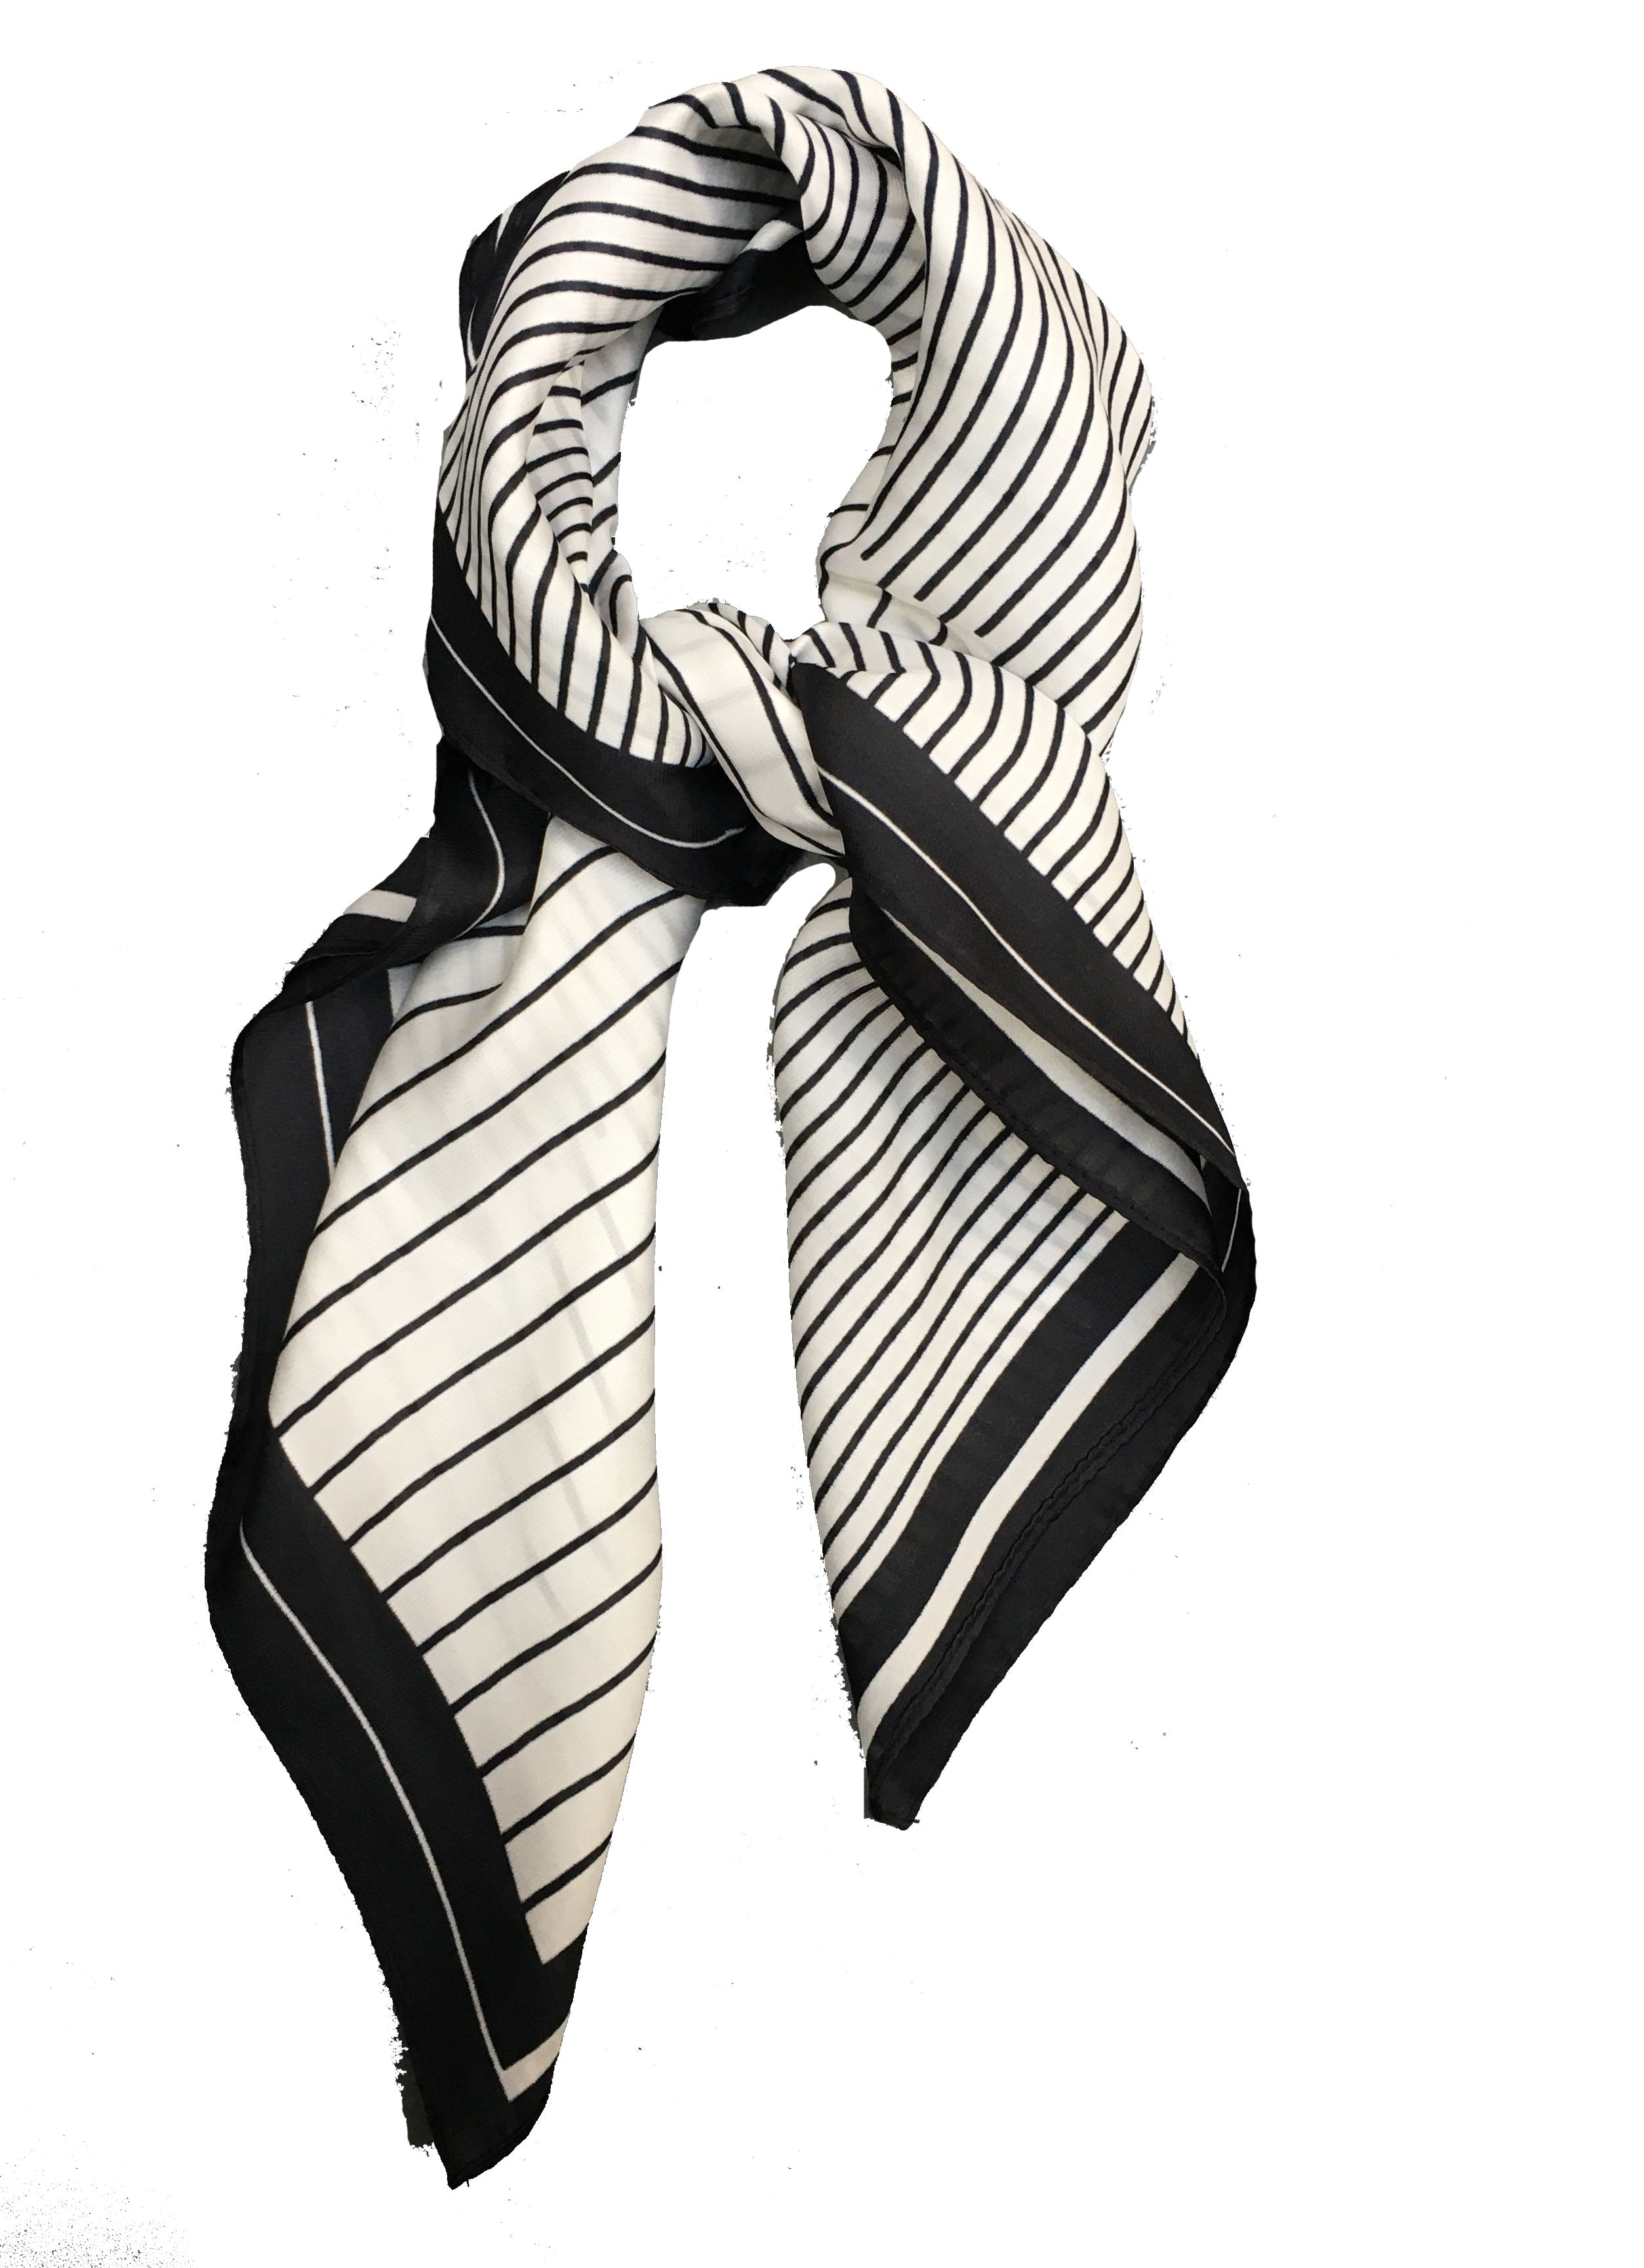 70cm x 70cm Square Scarf Black White Piano Stripes Scarf Thin Silky Womens Summer Spring